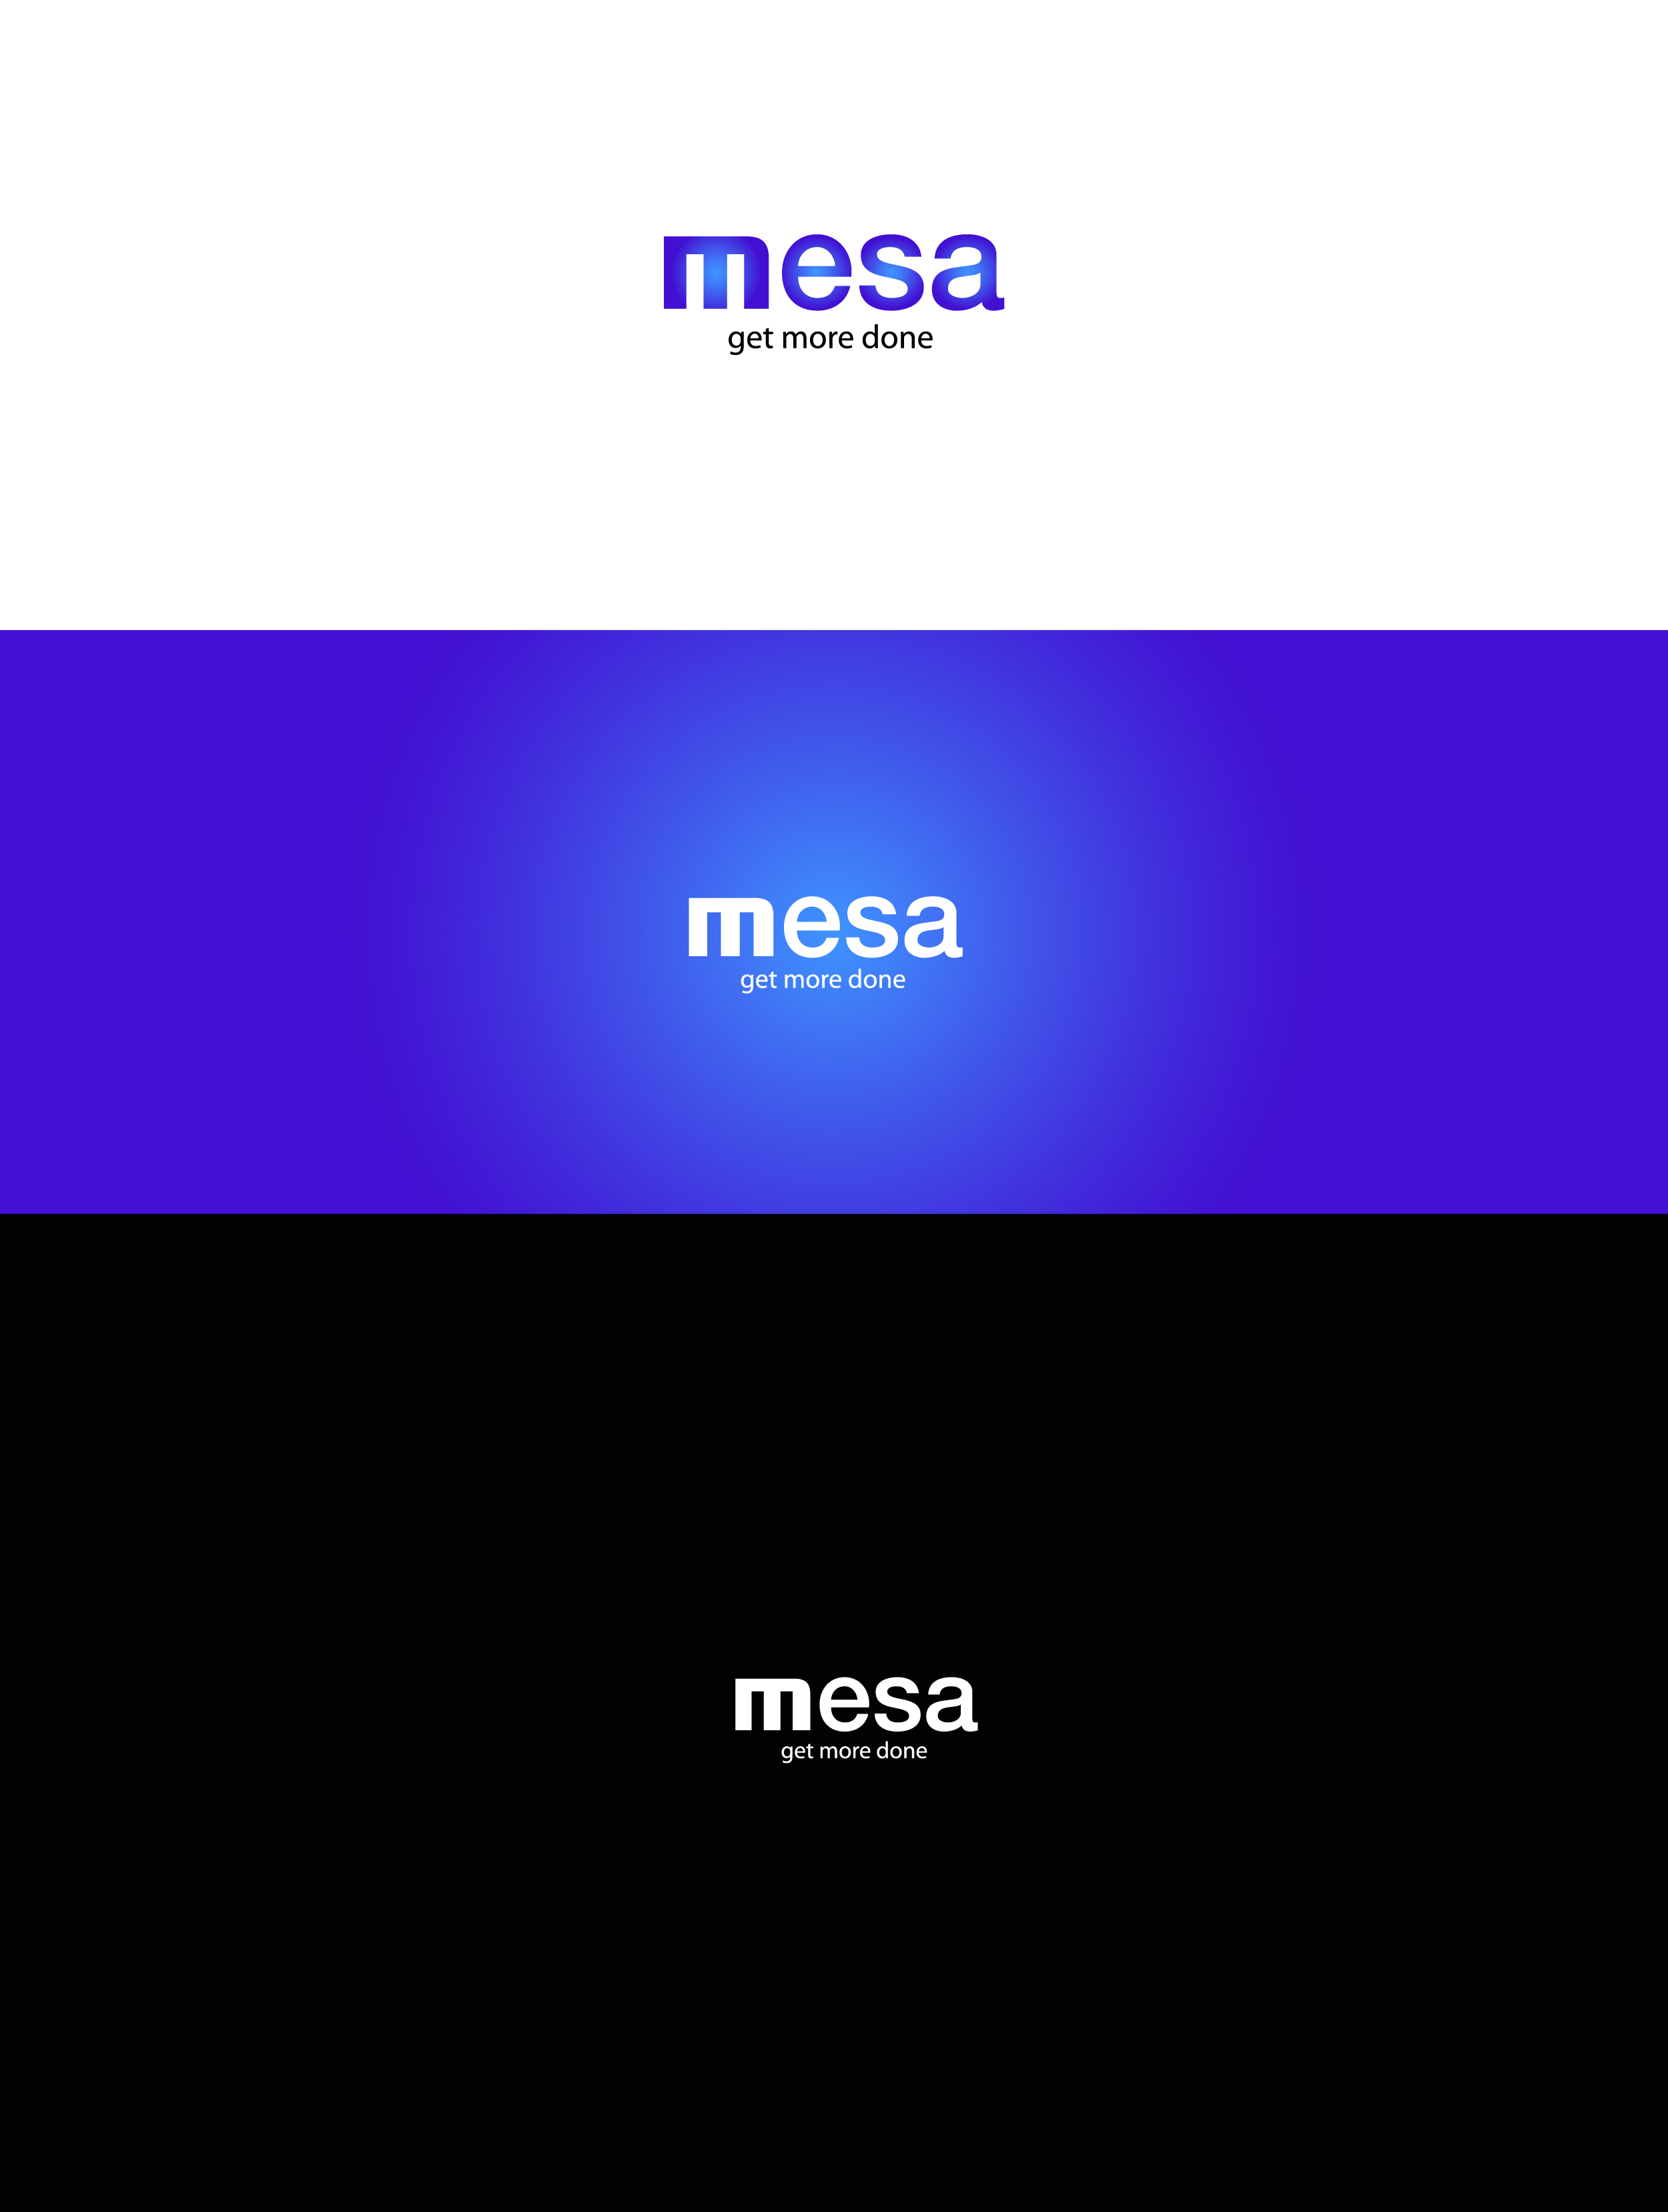 Logo Design by Osi Indra - Entry No. 23 in the Logo Design Contest Logo Design for Mesa.